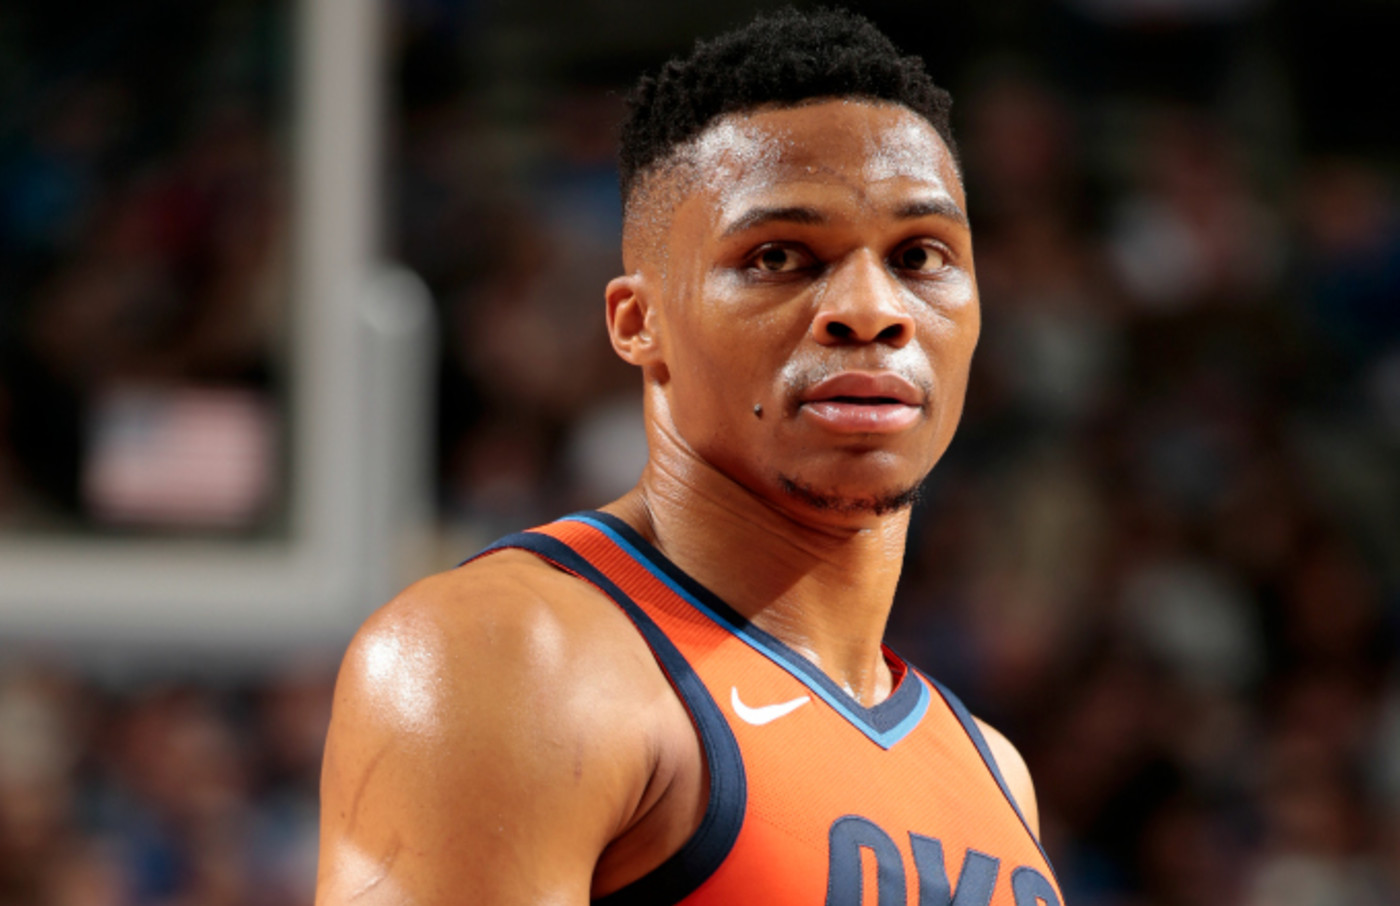 Russell Westbrook #0 of the Oklahoma City Thunder looks on during the game